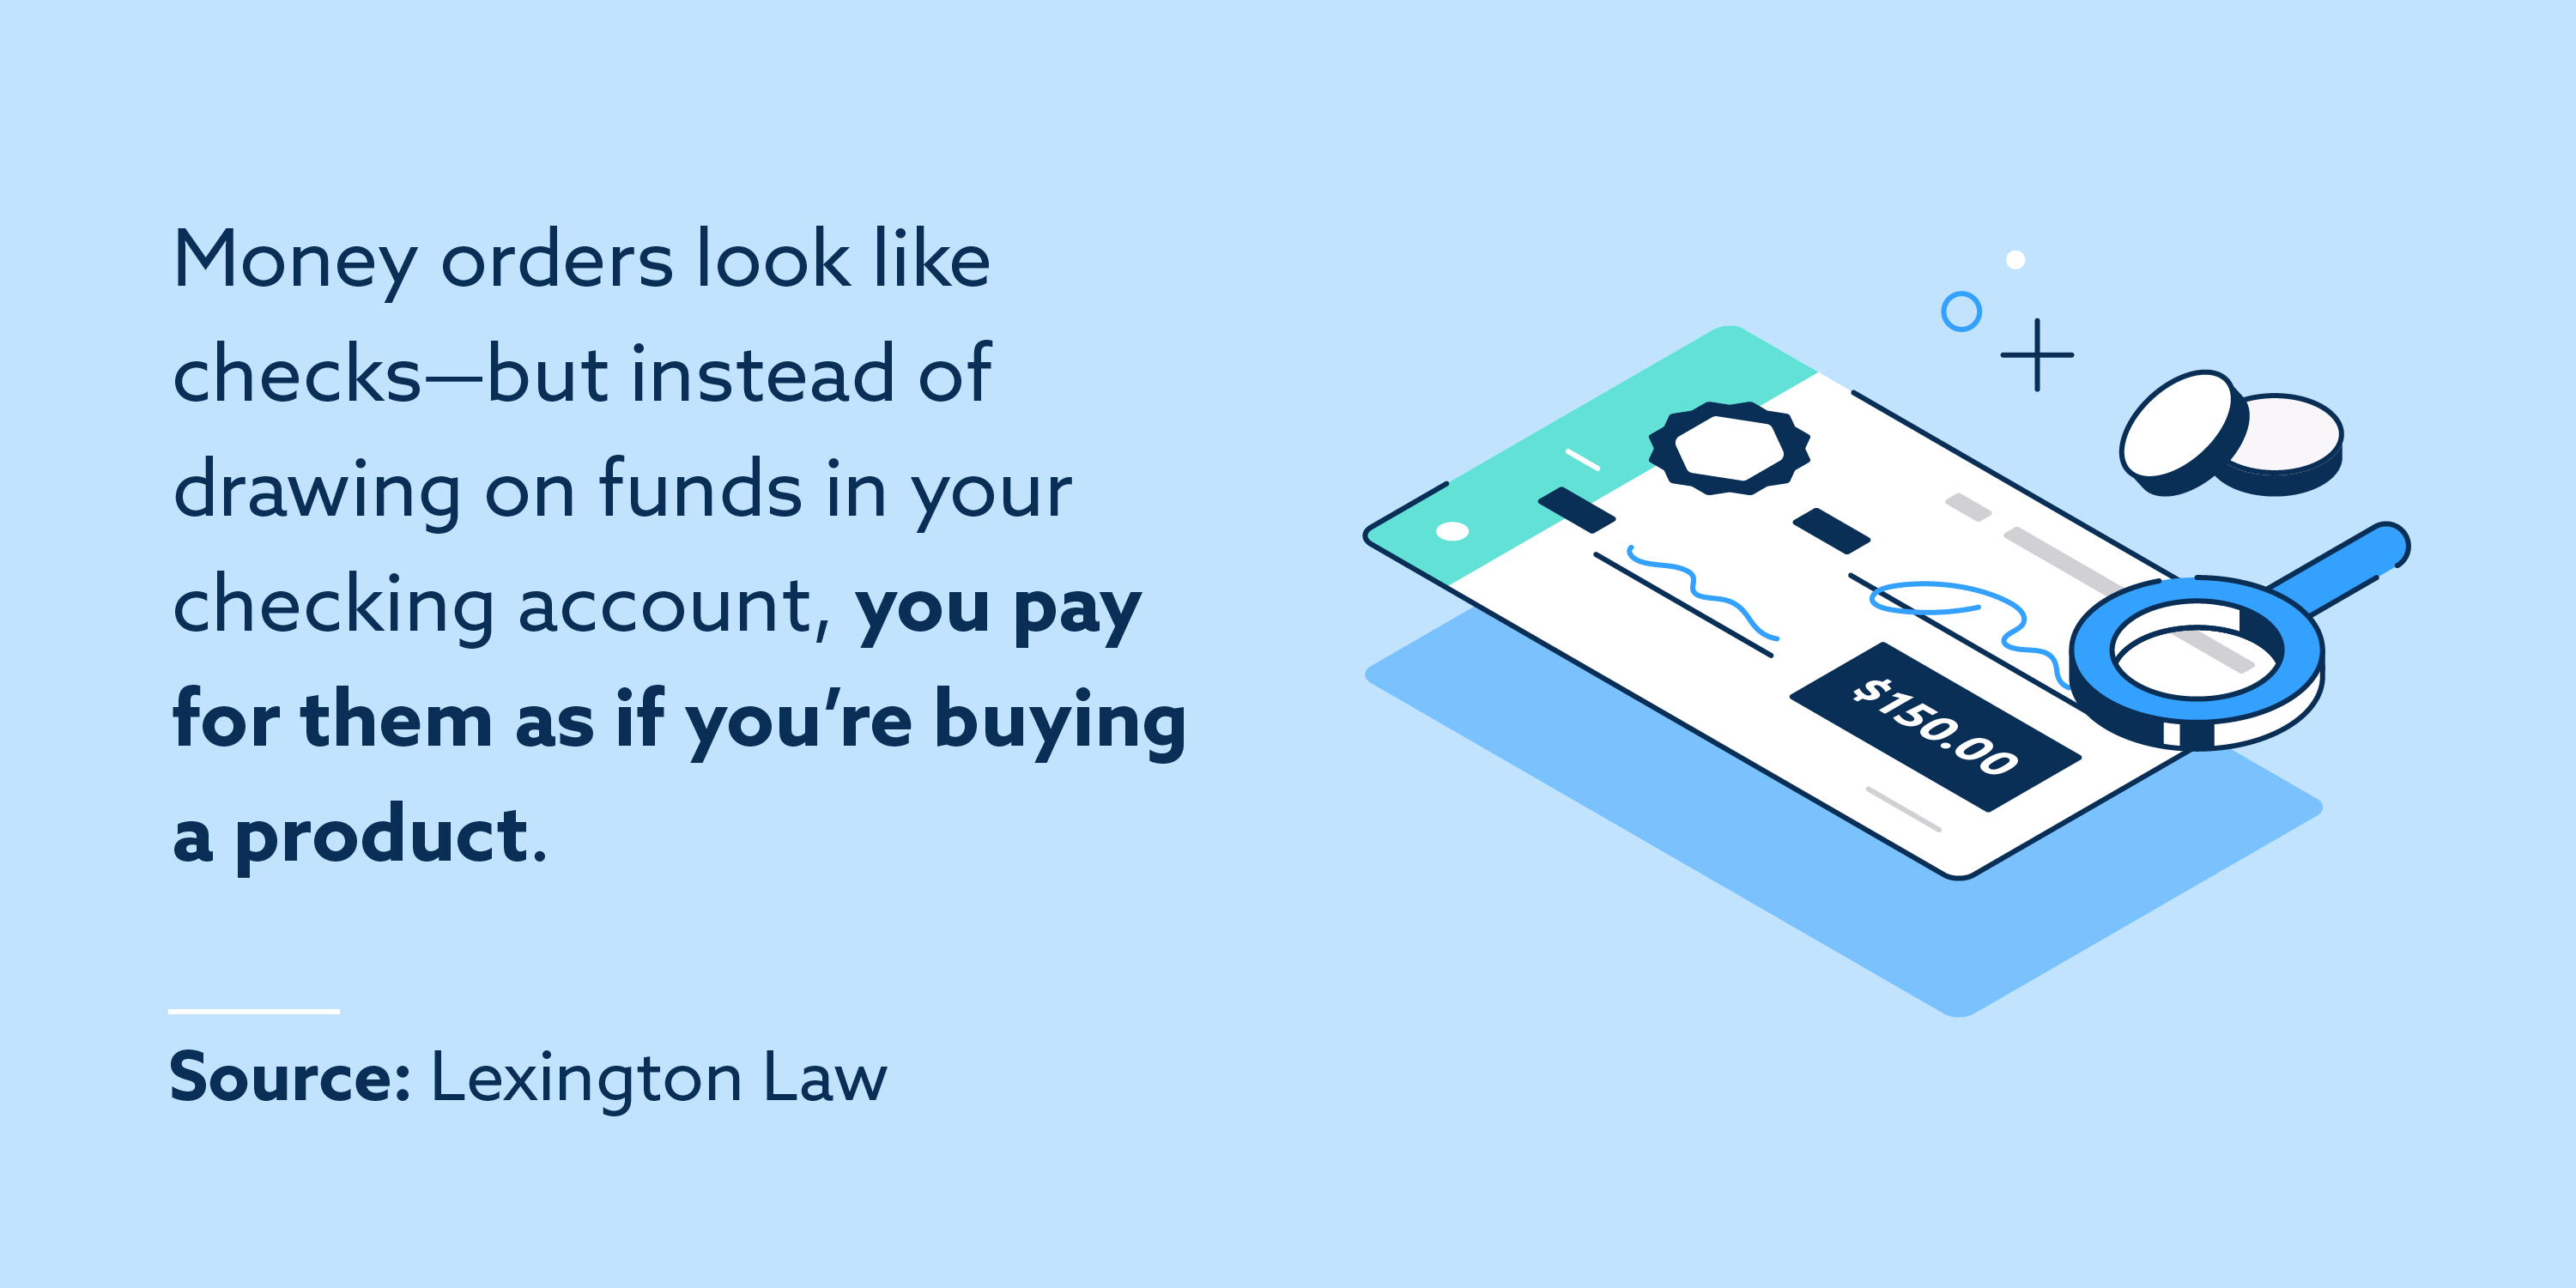 Money orders look like checks—but instead of drawing on funds in your checking account, you pay for them as if you're buying a product.